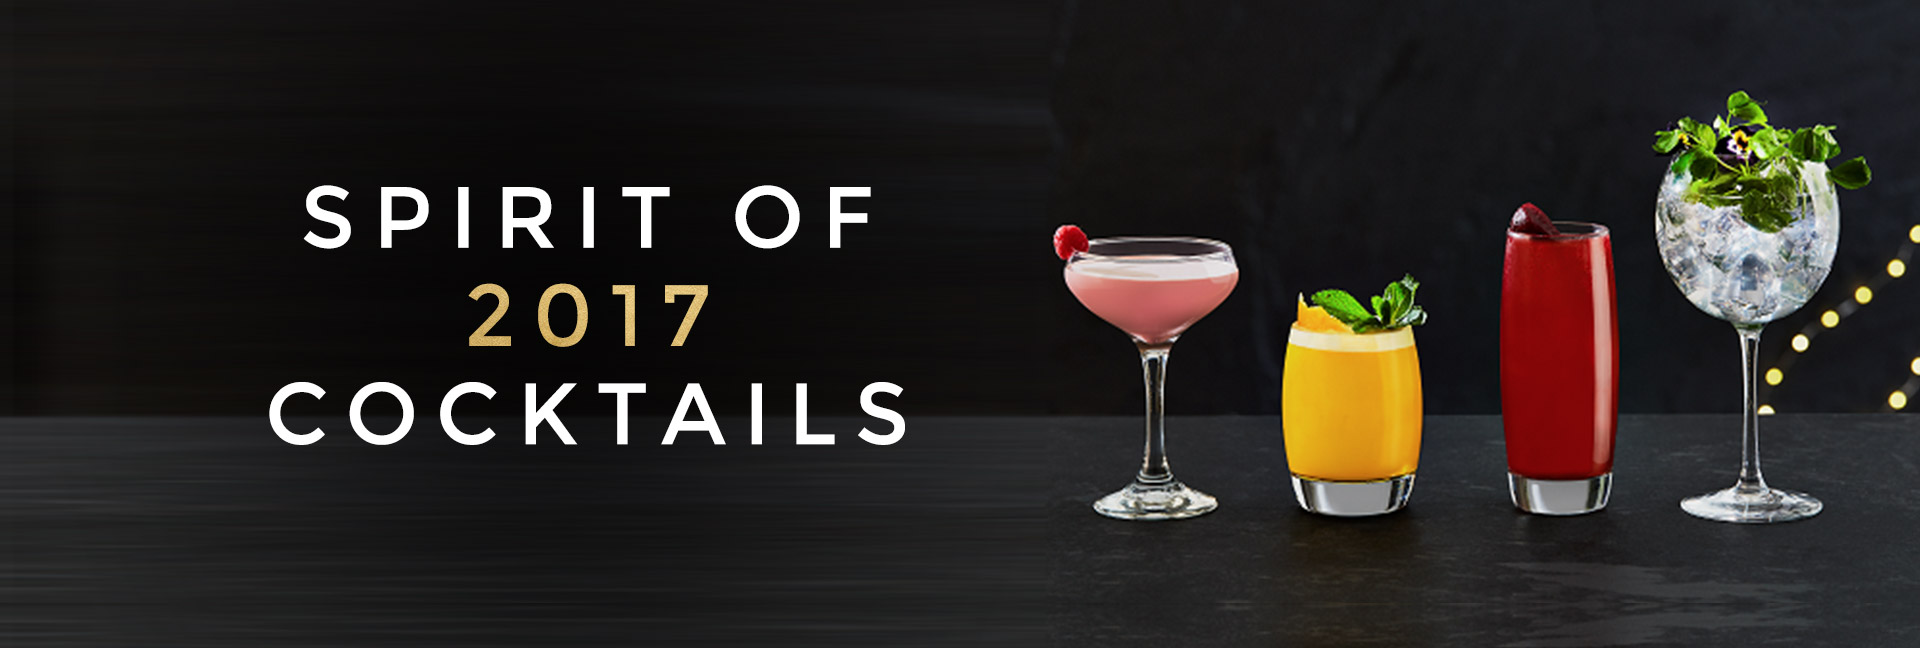 Spirit of 2017 cocktails at All Bar One Charing Cross